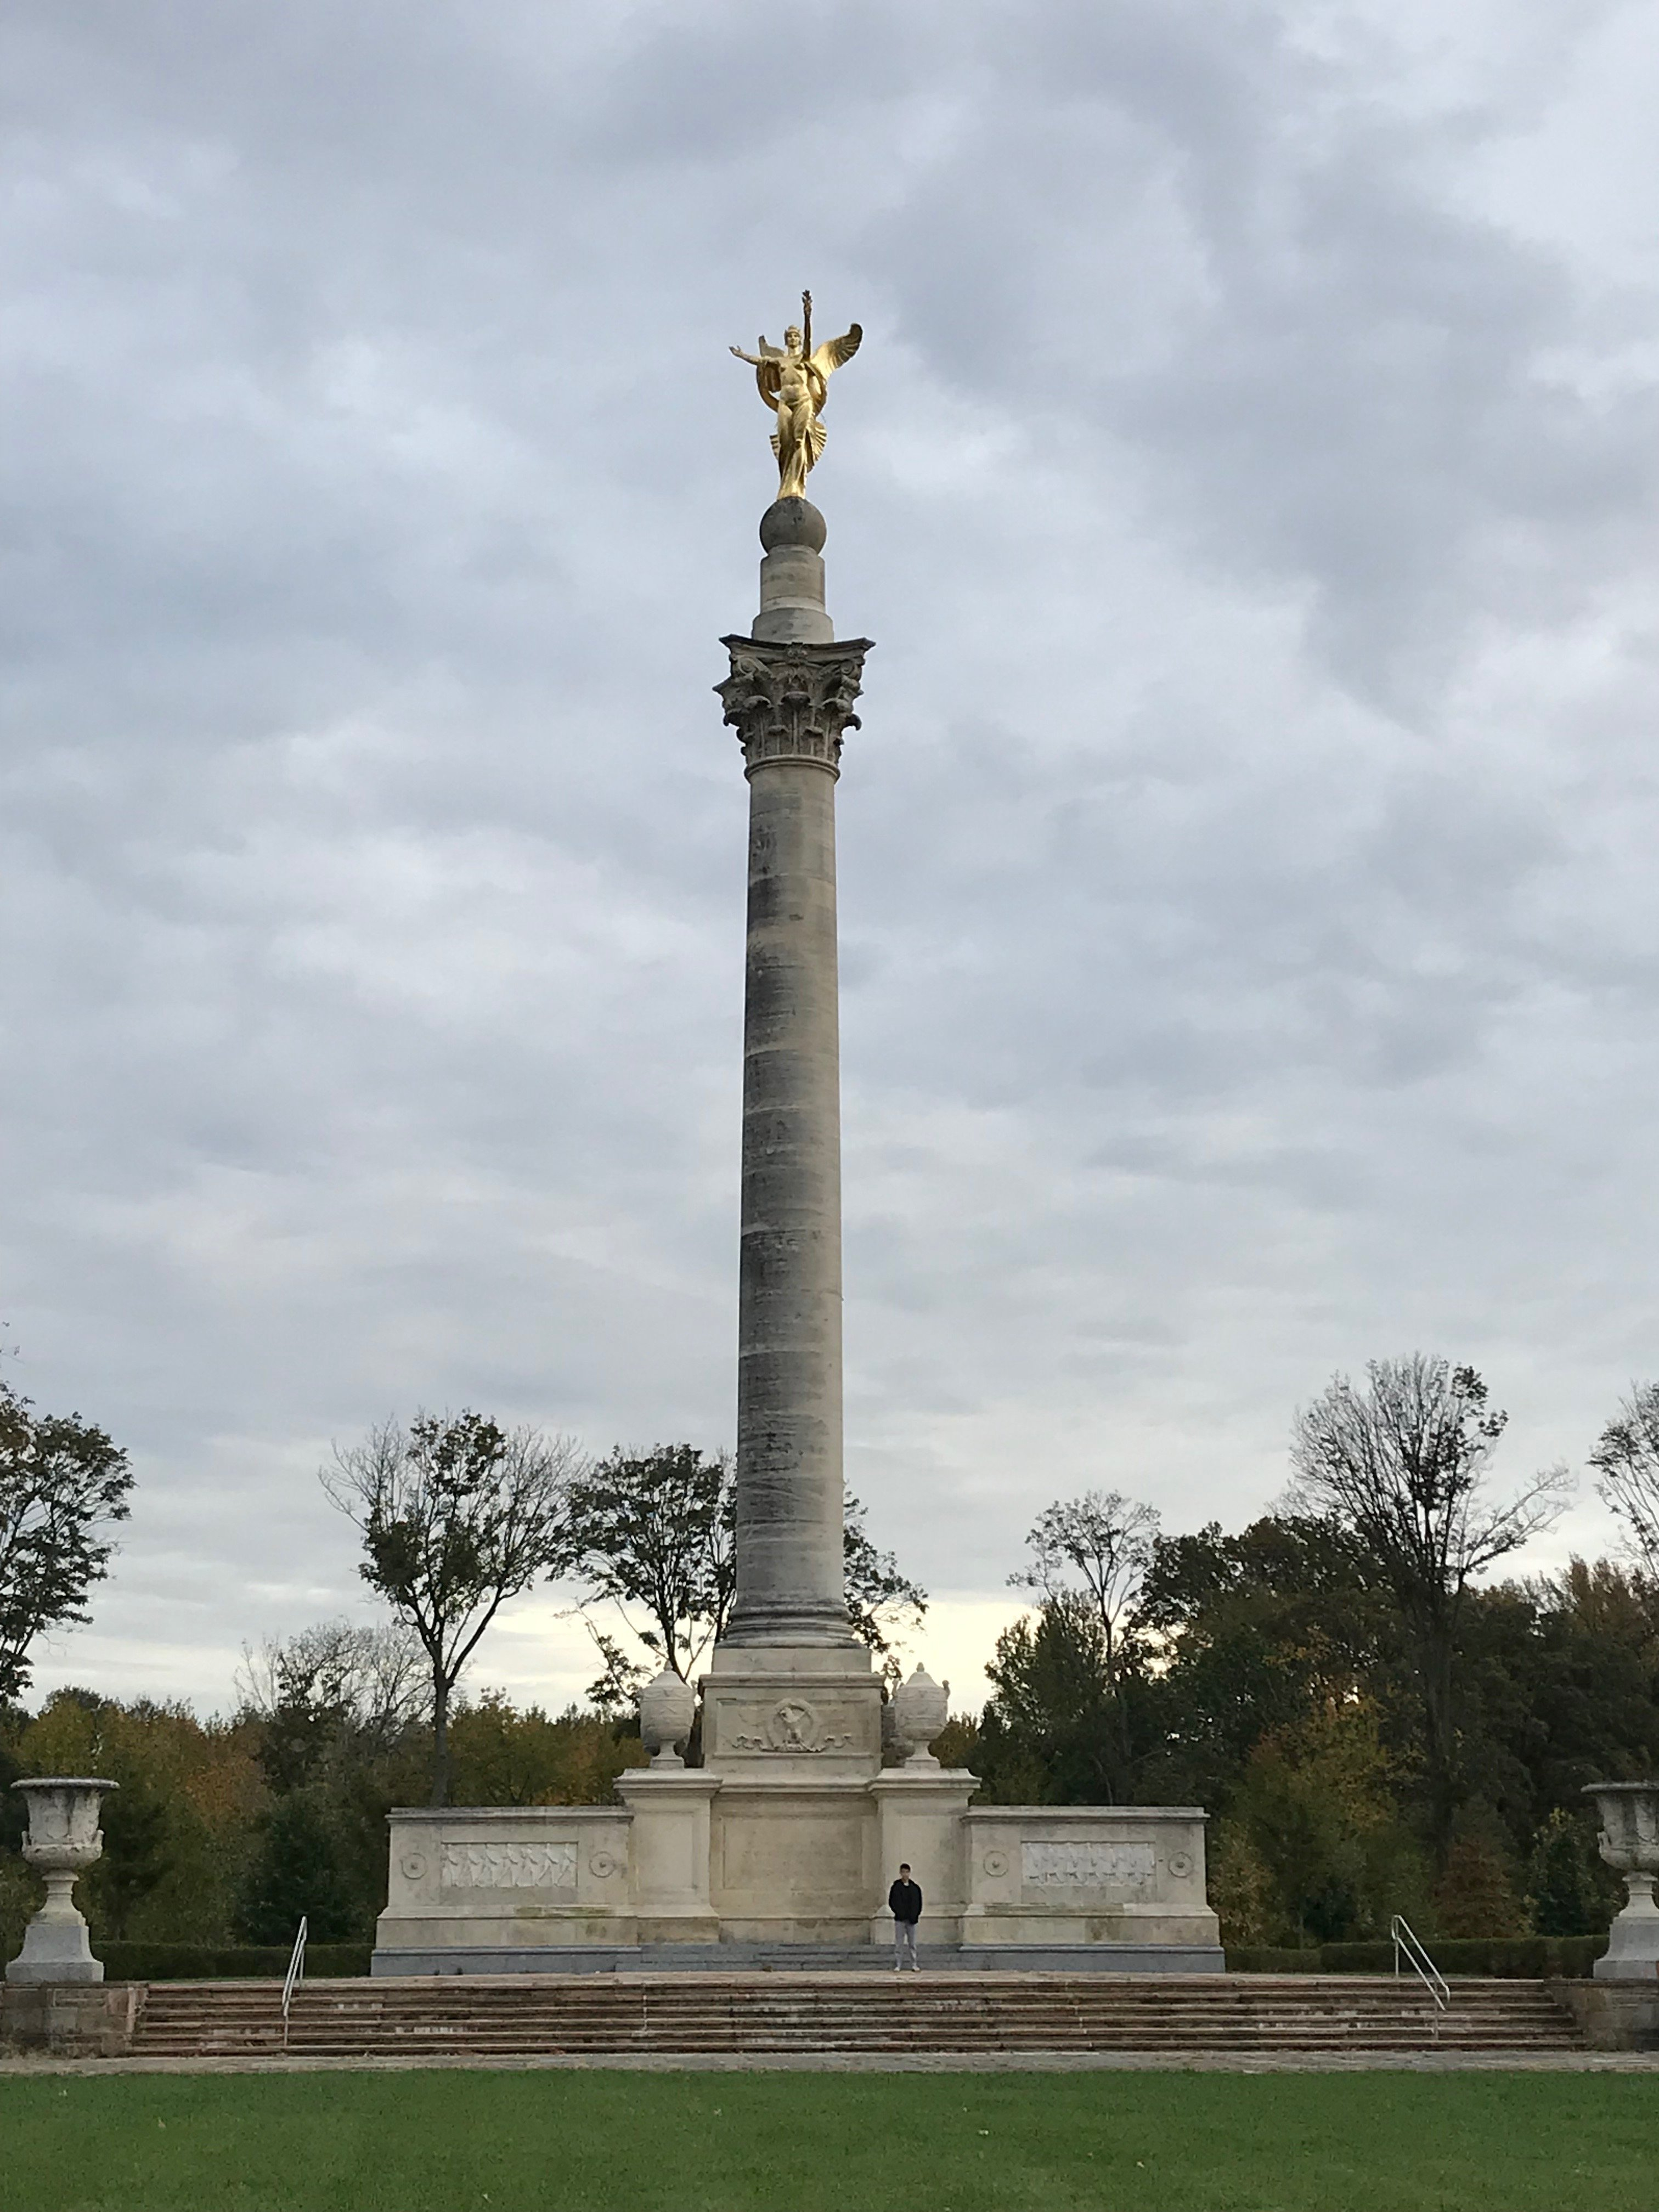 The monument with a human for scale.